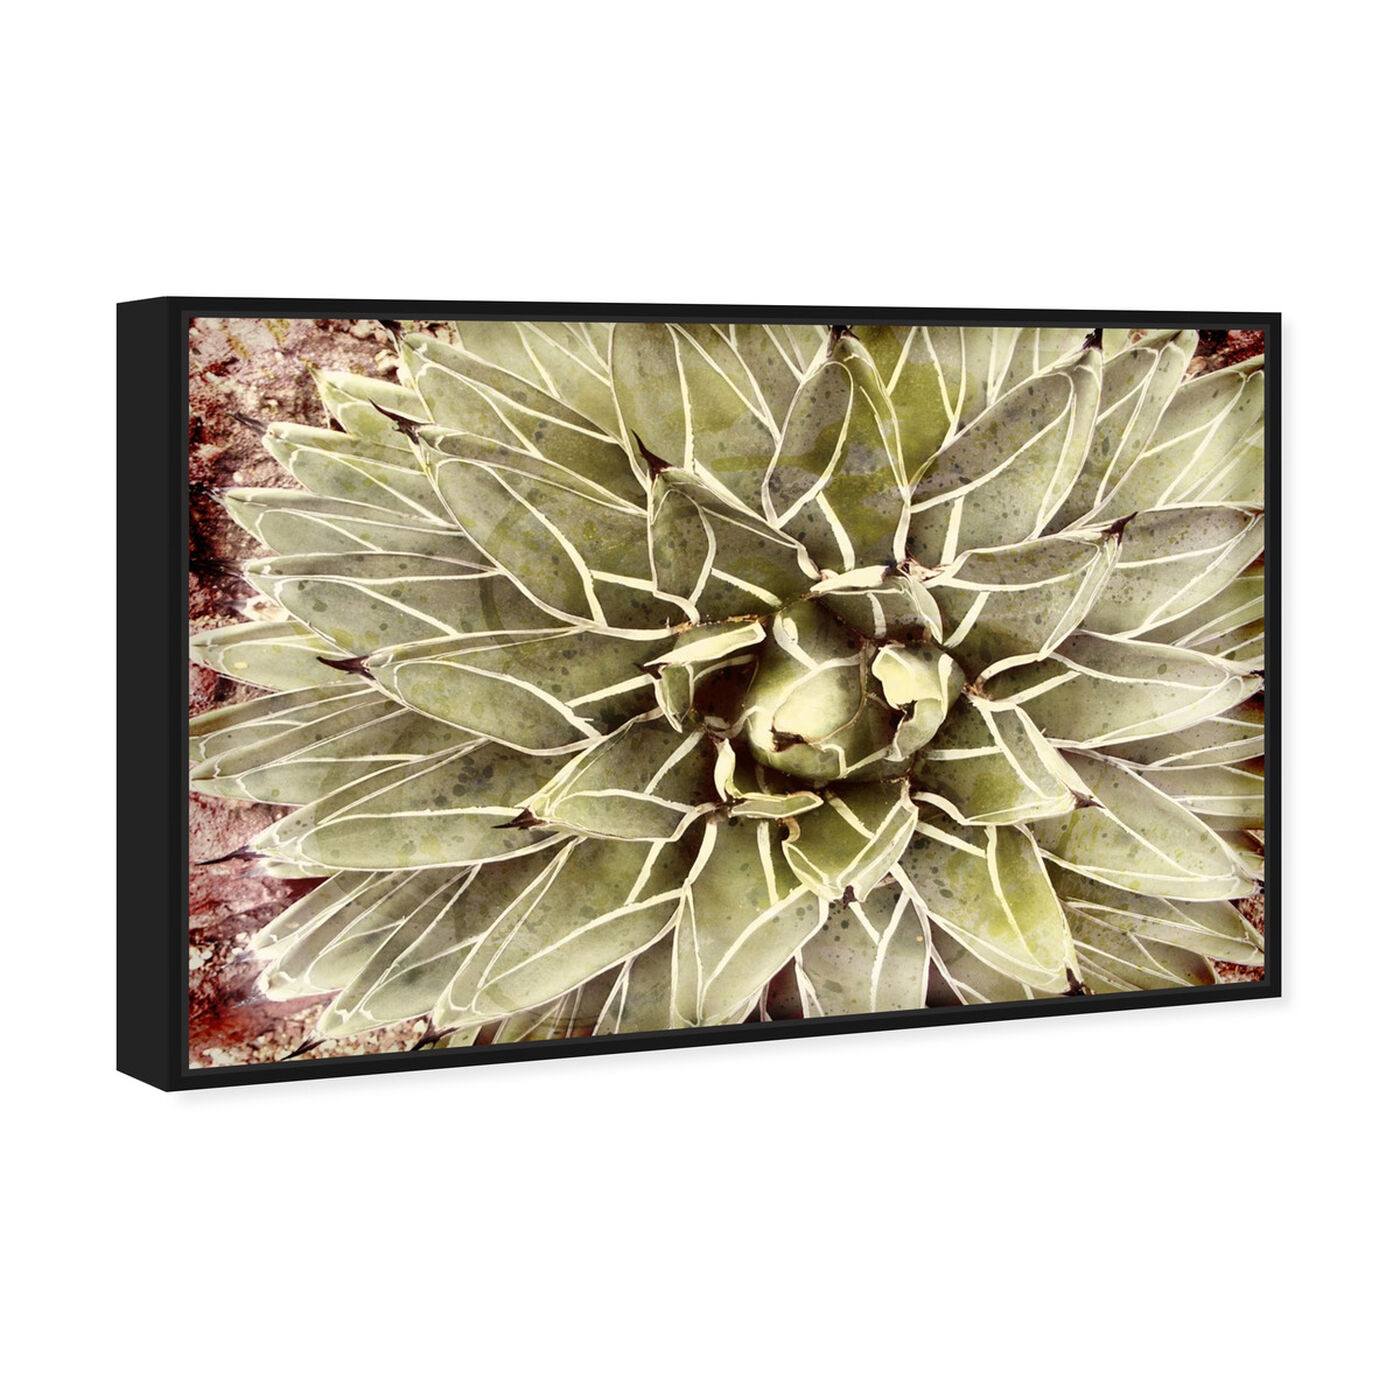 Angled view of Cactus Flower featuring floral and botanical and botanicals art.